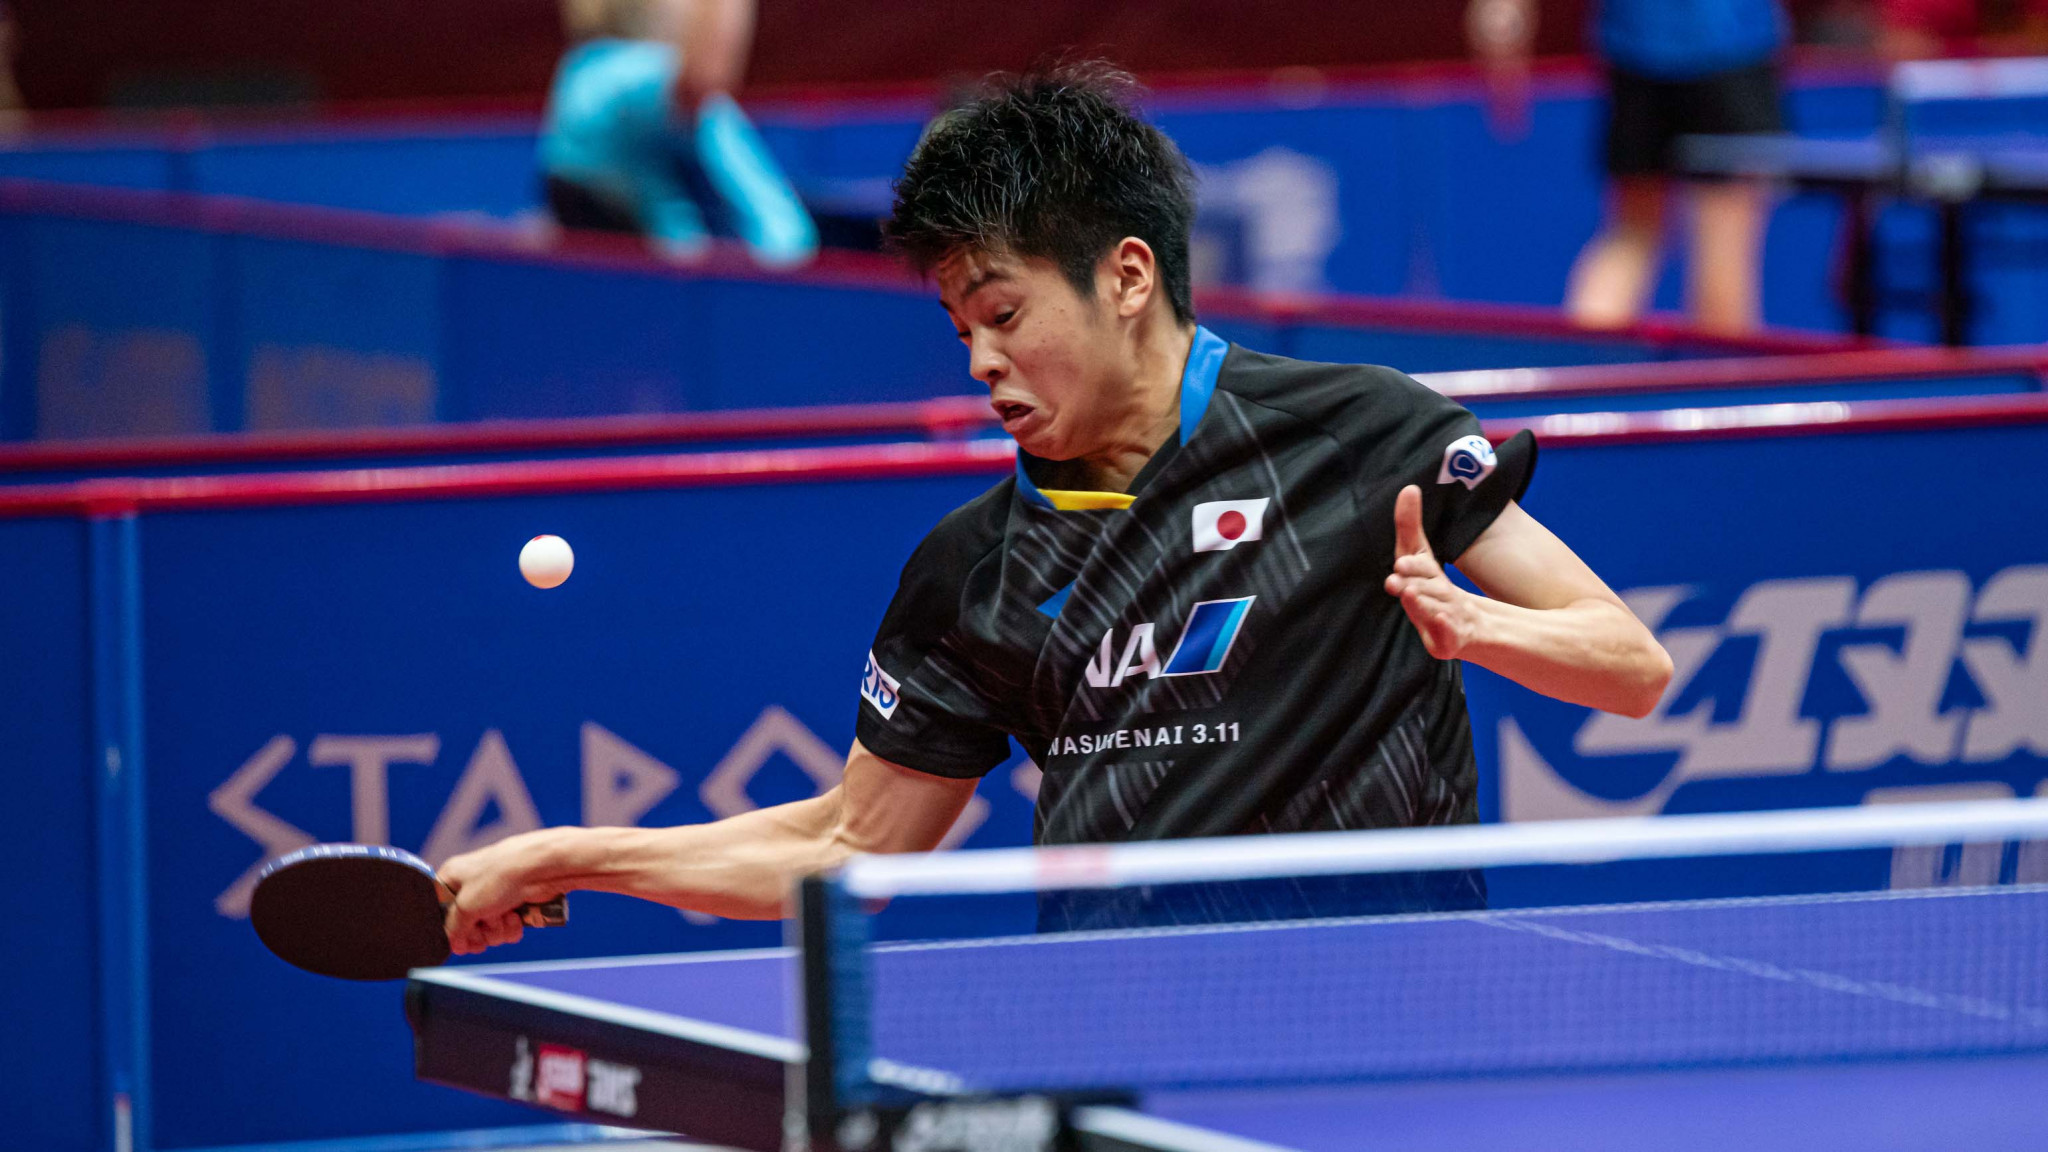 Seeds scattered in first round of ITTF Bulgaria Open